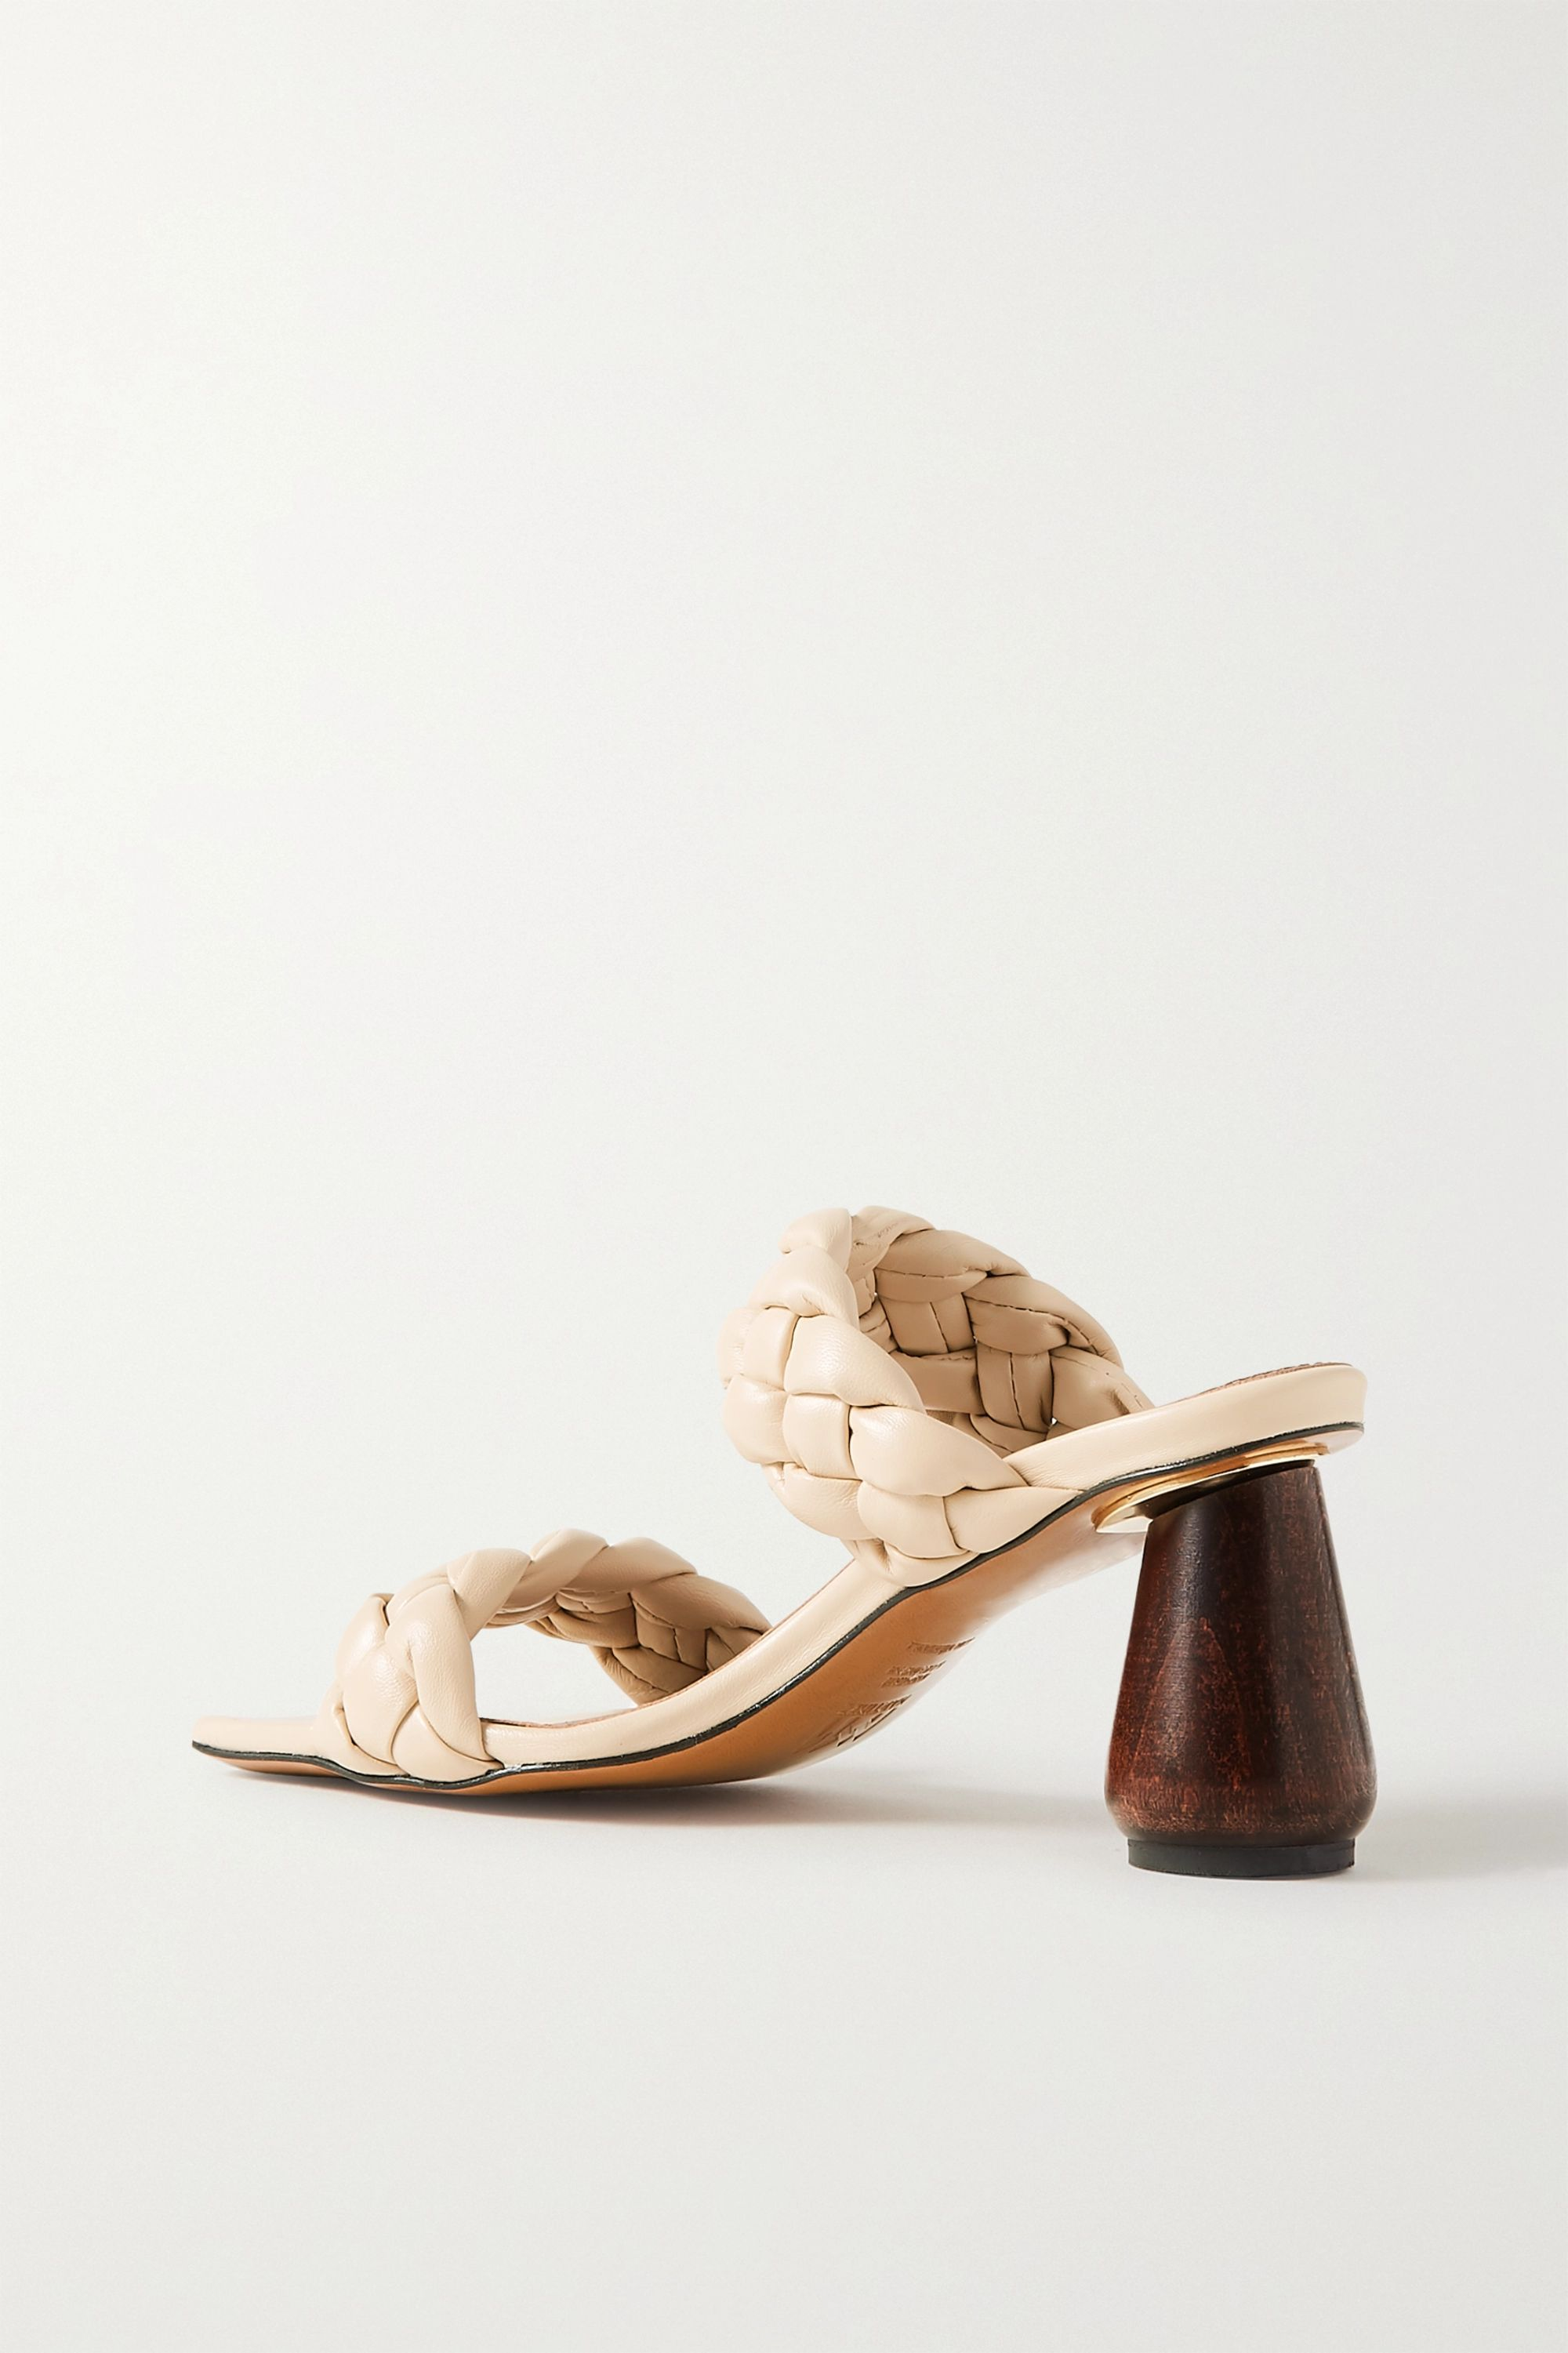 Souliers Martinez Mitjorn braided leather mules